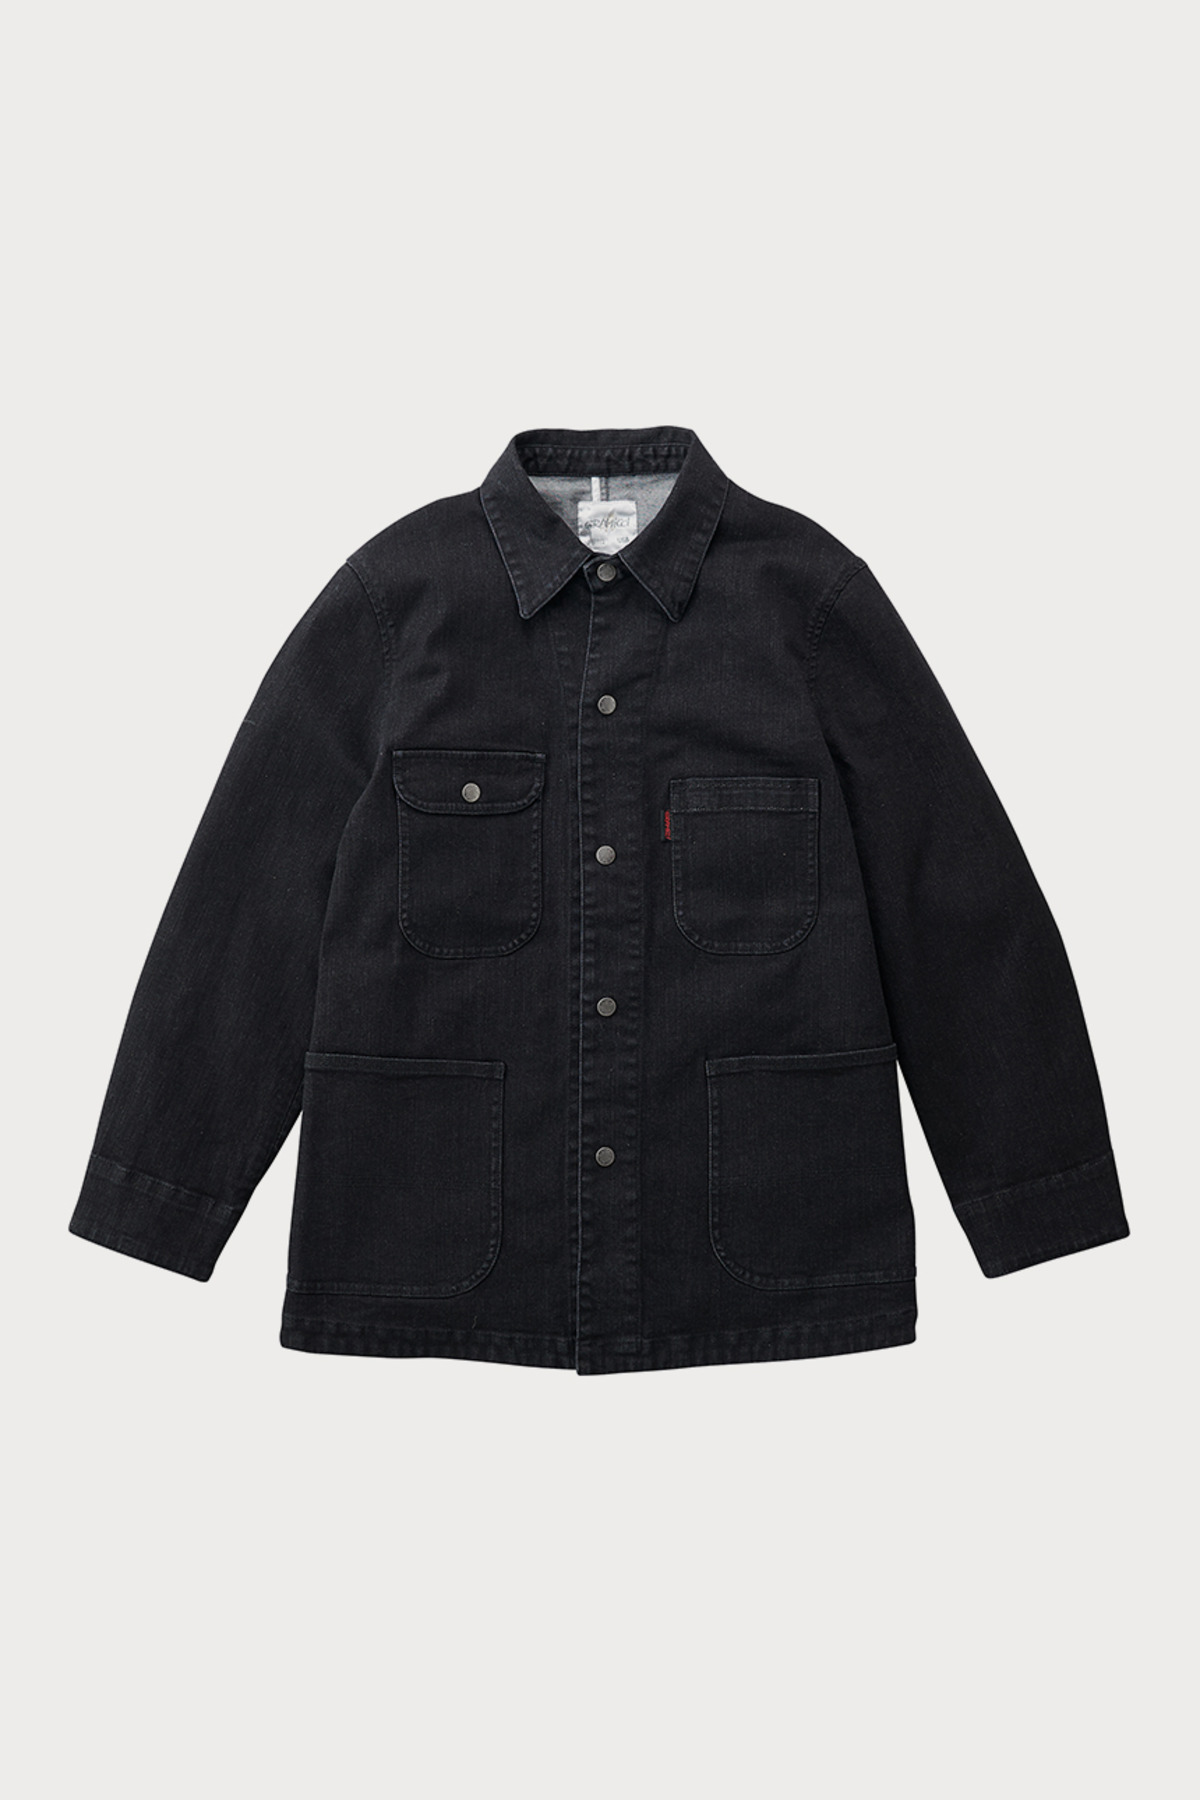 DENIM COVER ALL JACKET BLACK ONE WASH